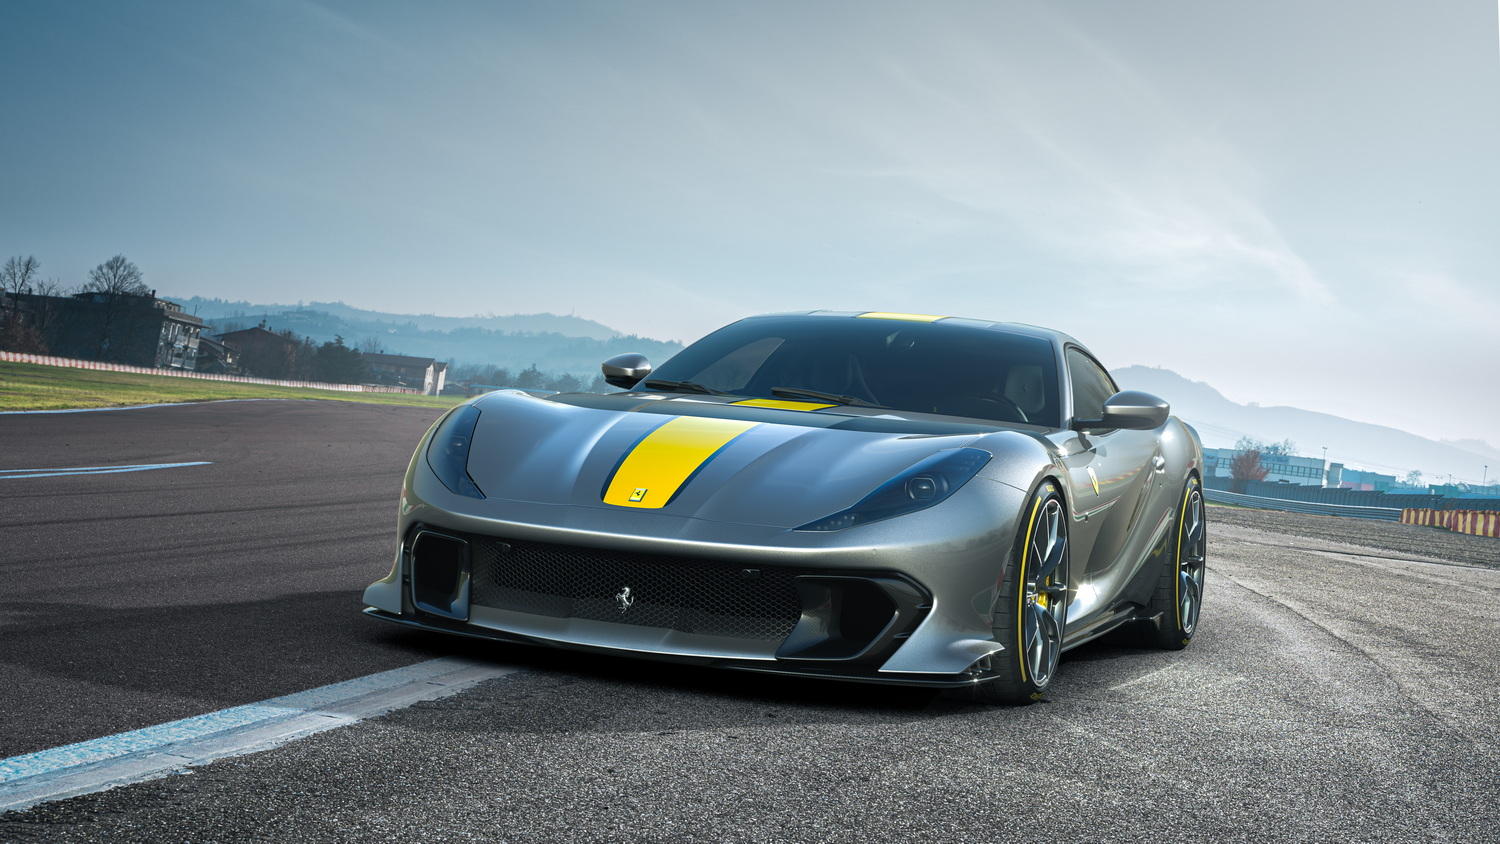 Ferrari readies even-faster 812 Superfast. Image by Ferrari.